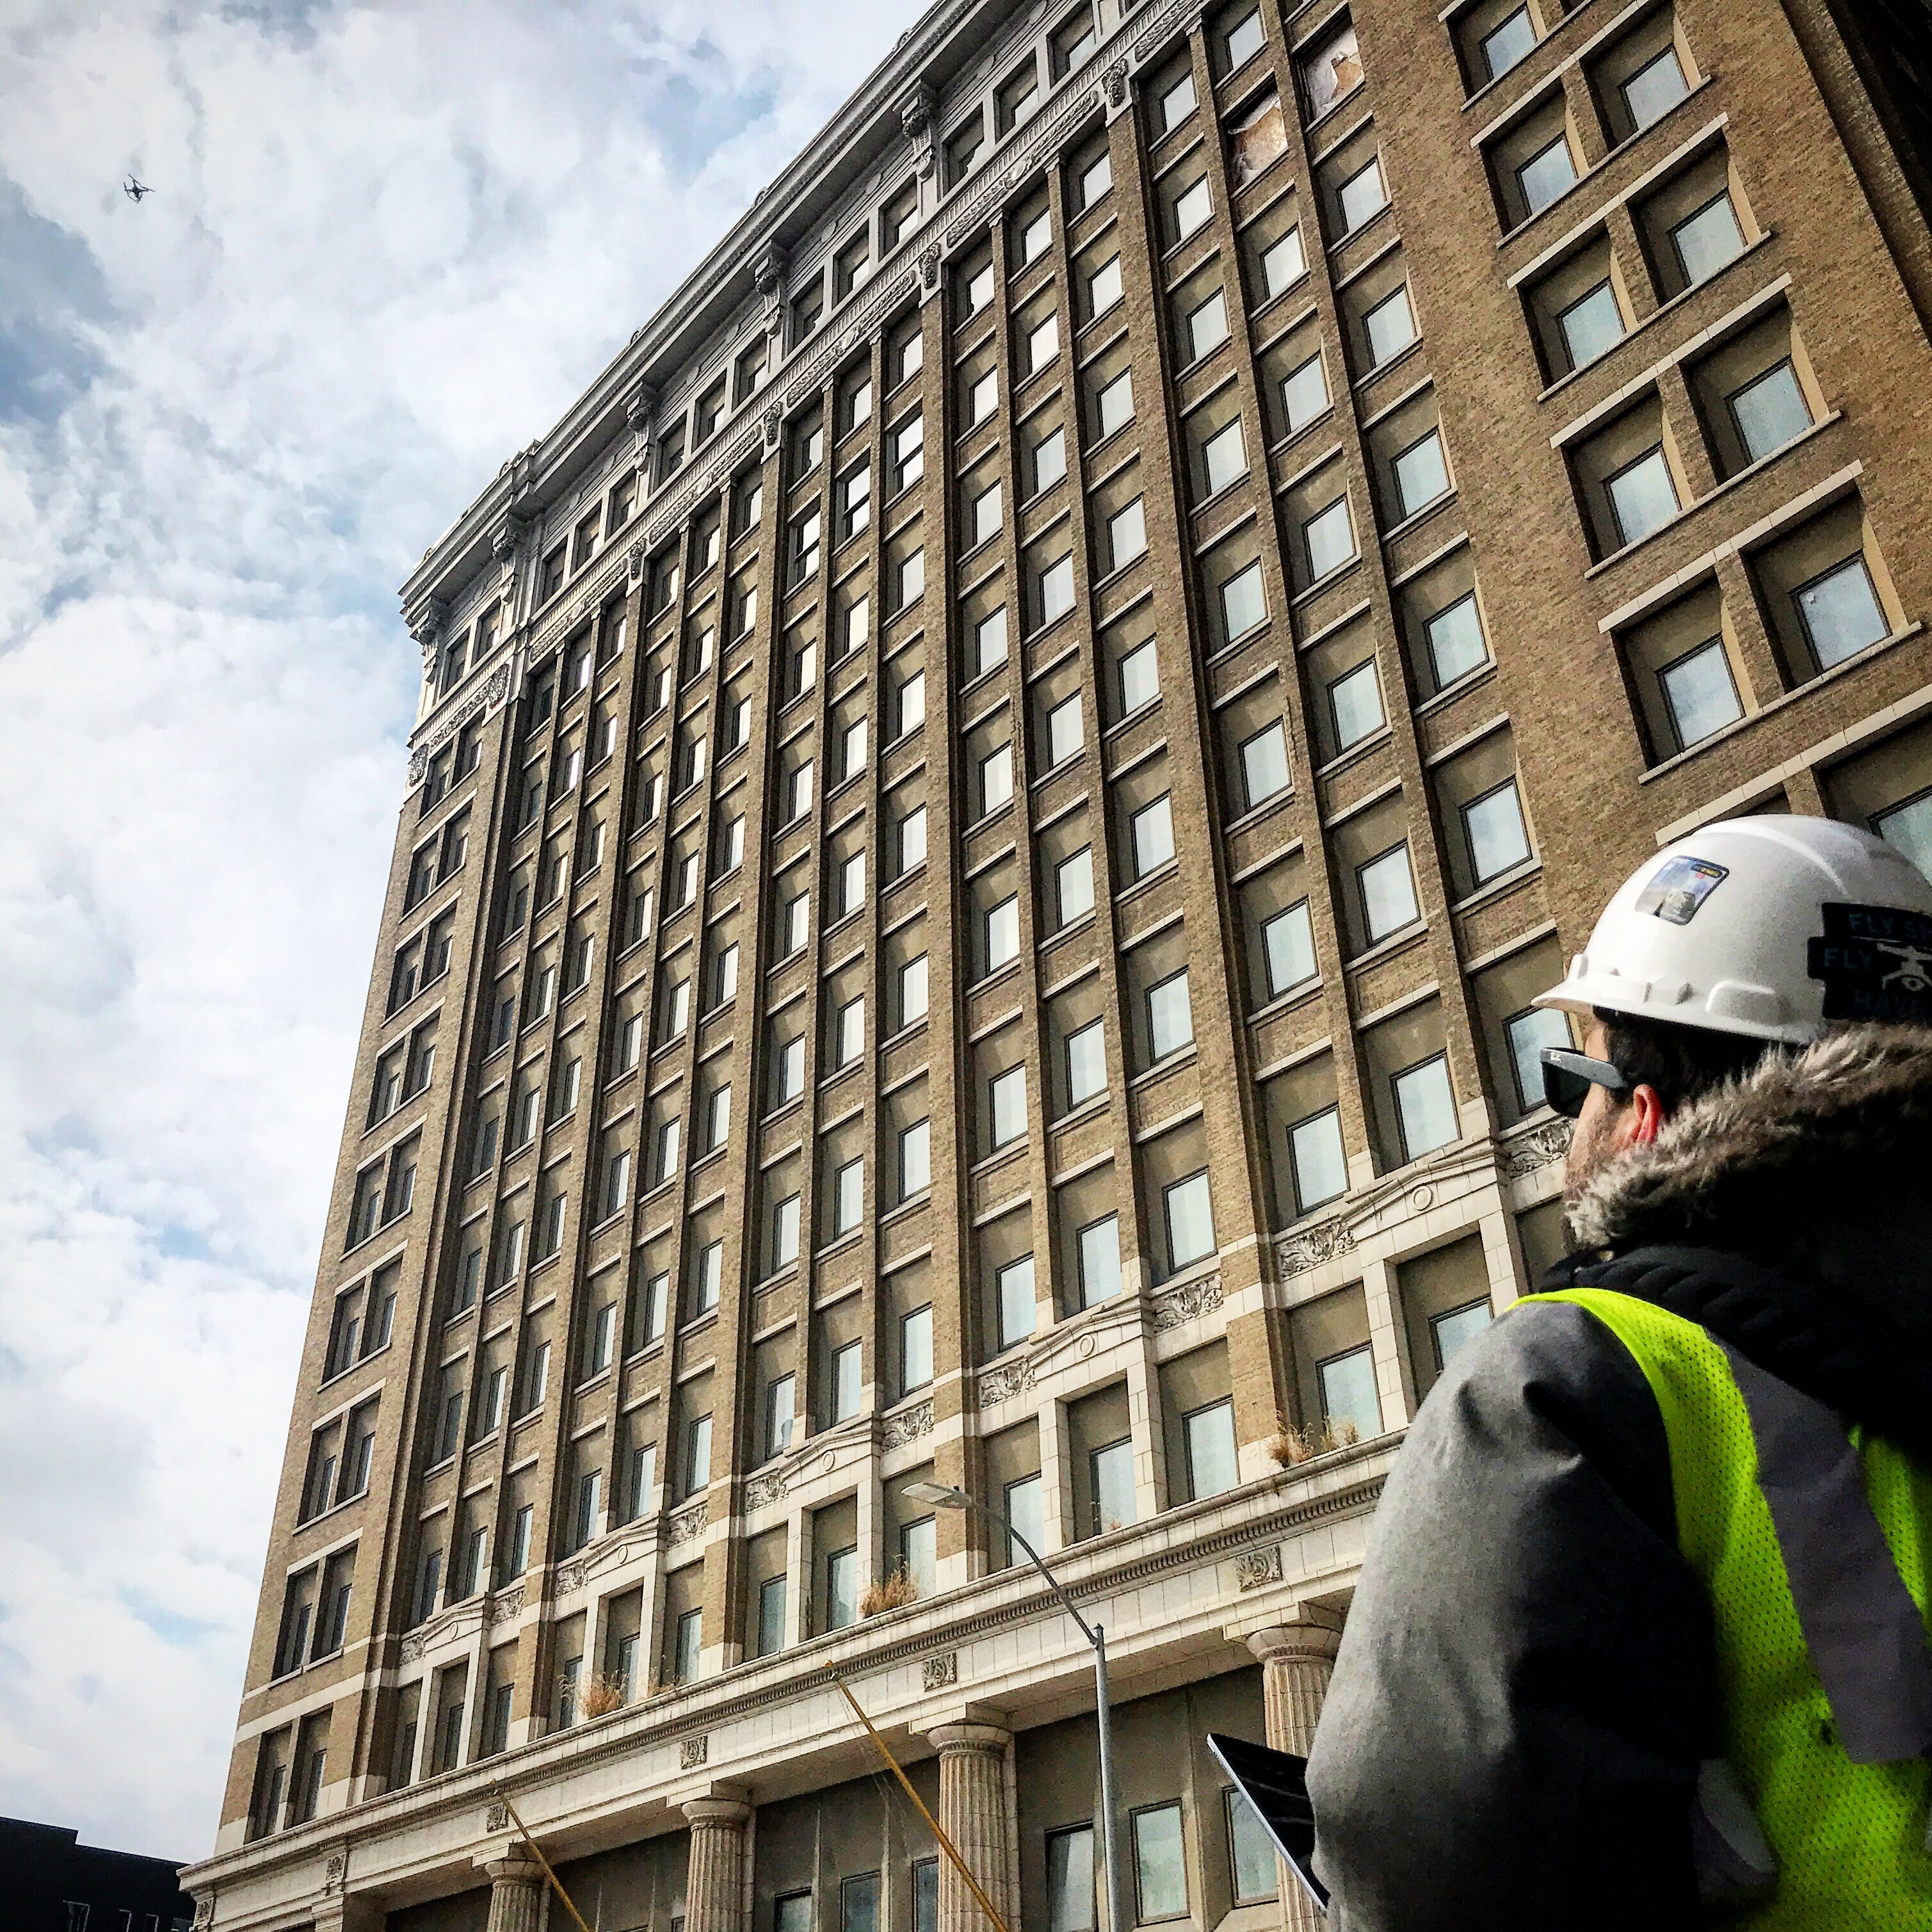 Helios Visions co-founder and chief pilot Tyler Gibson operates a drone on the job in for the renovation of Midland Bank in Des Moines, Iowa.